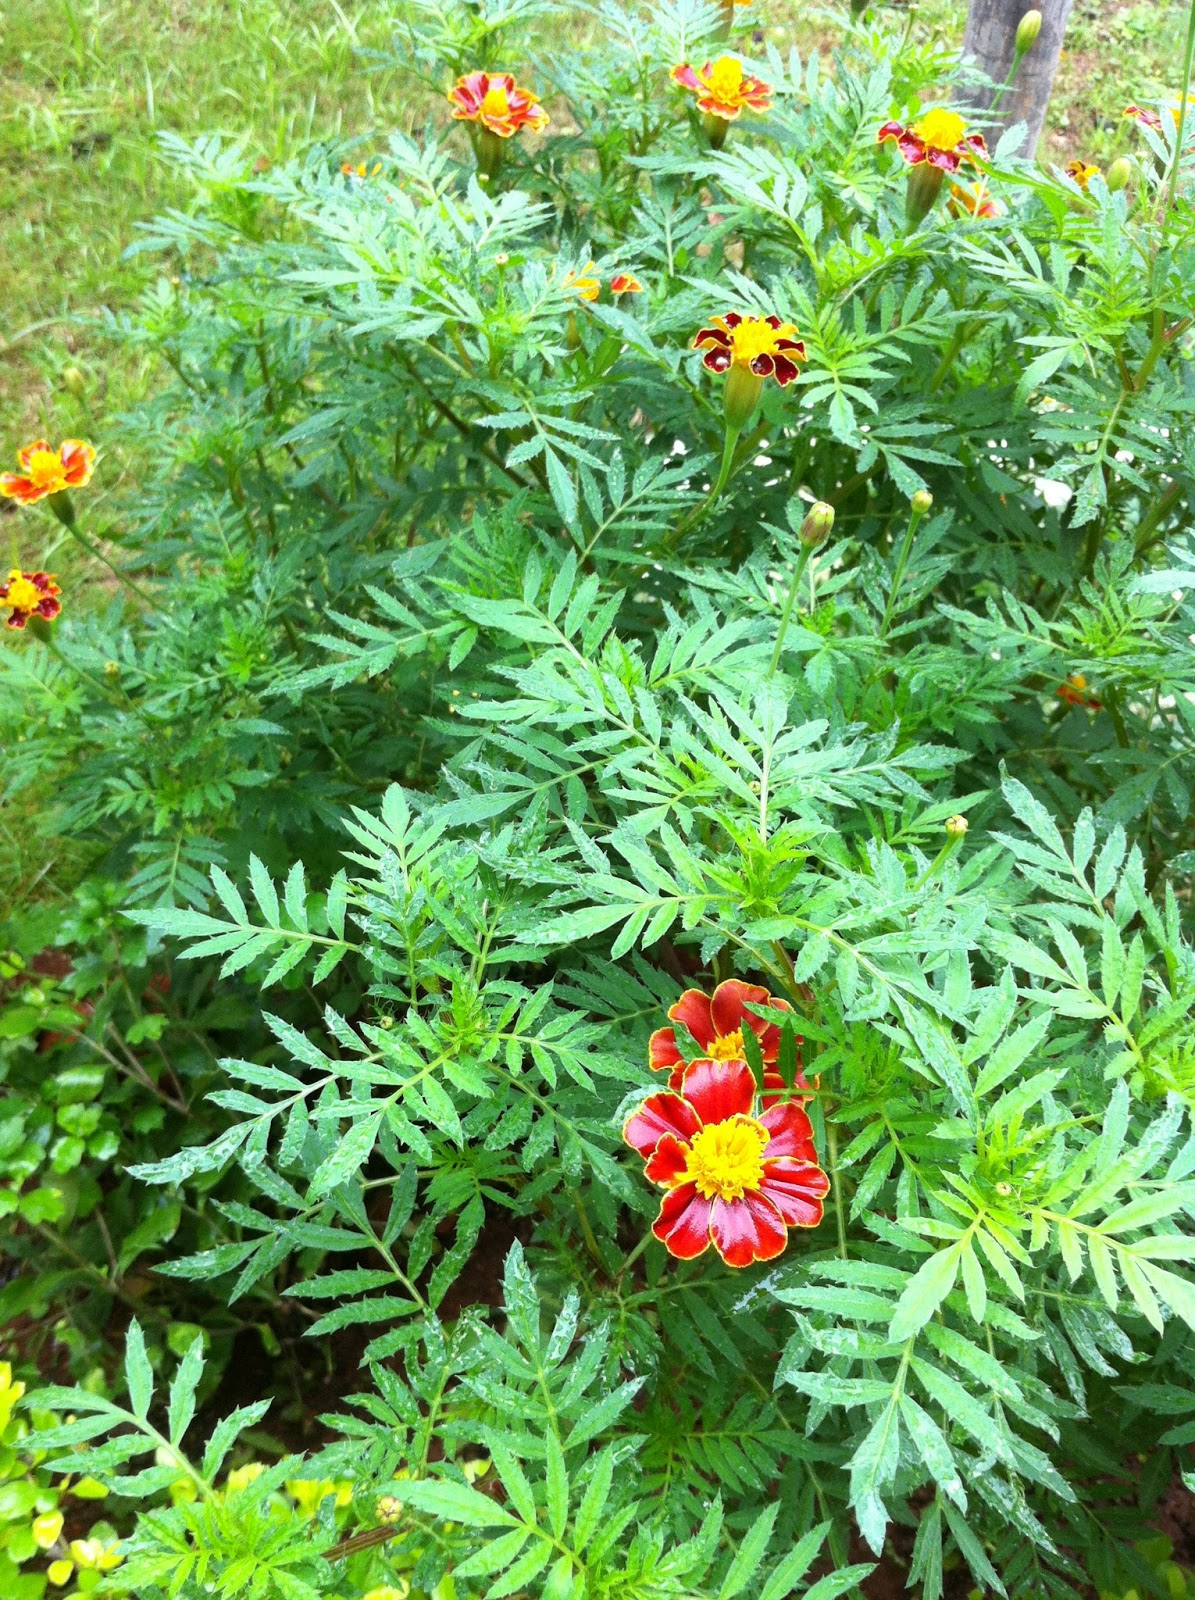 Maha Jeevitham: Morningwalk Nature Collection-1 Home Garden